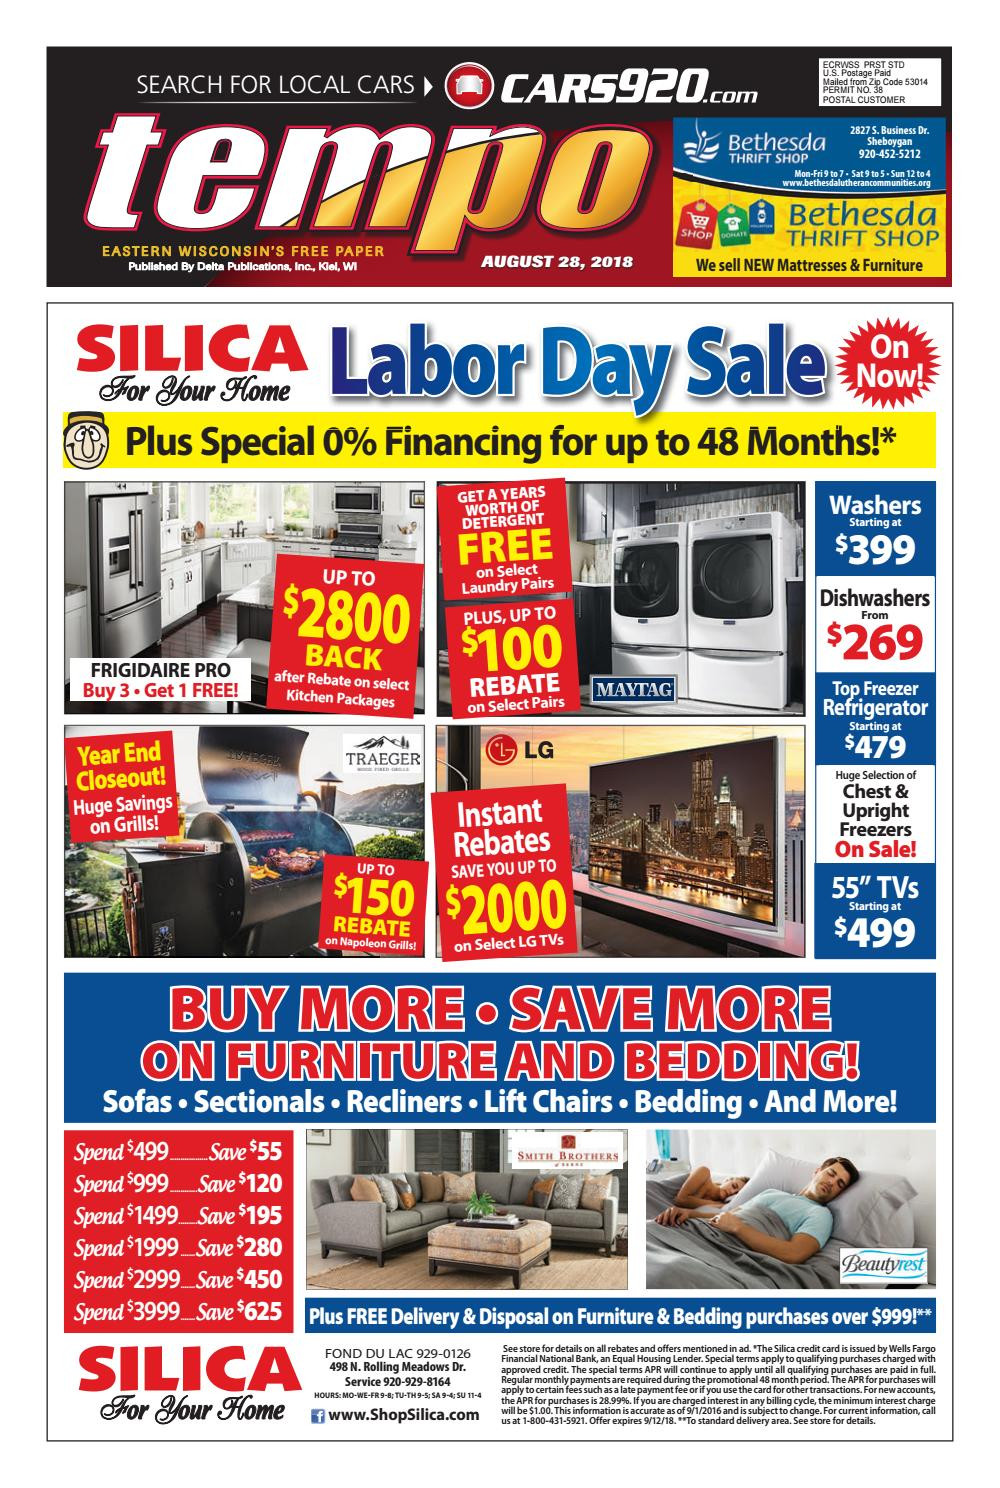 Ace Hardwood Flooring Smithfield Ri Of Tempo for Week Of August 28 2018 by Delta Publications issuu with Page 1